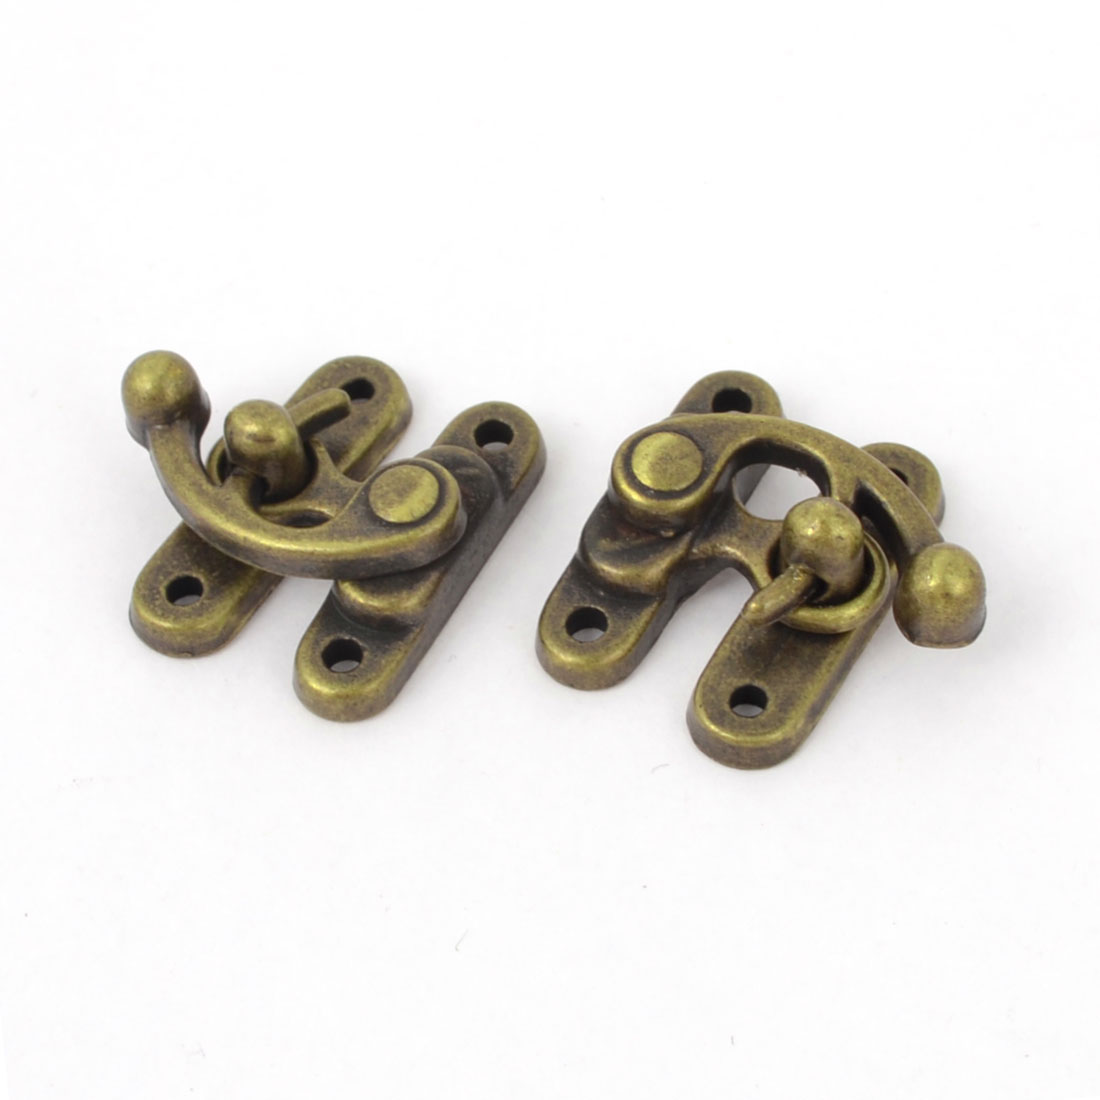 2 Pcs Bronze Tone Alloy Padlock Hasp Hook Jewelry Box Buckle Shackle Lock